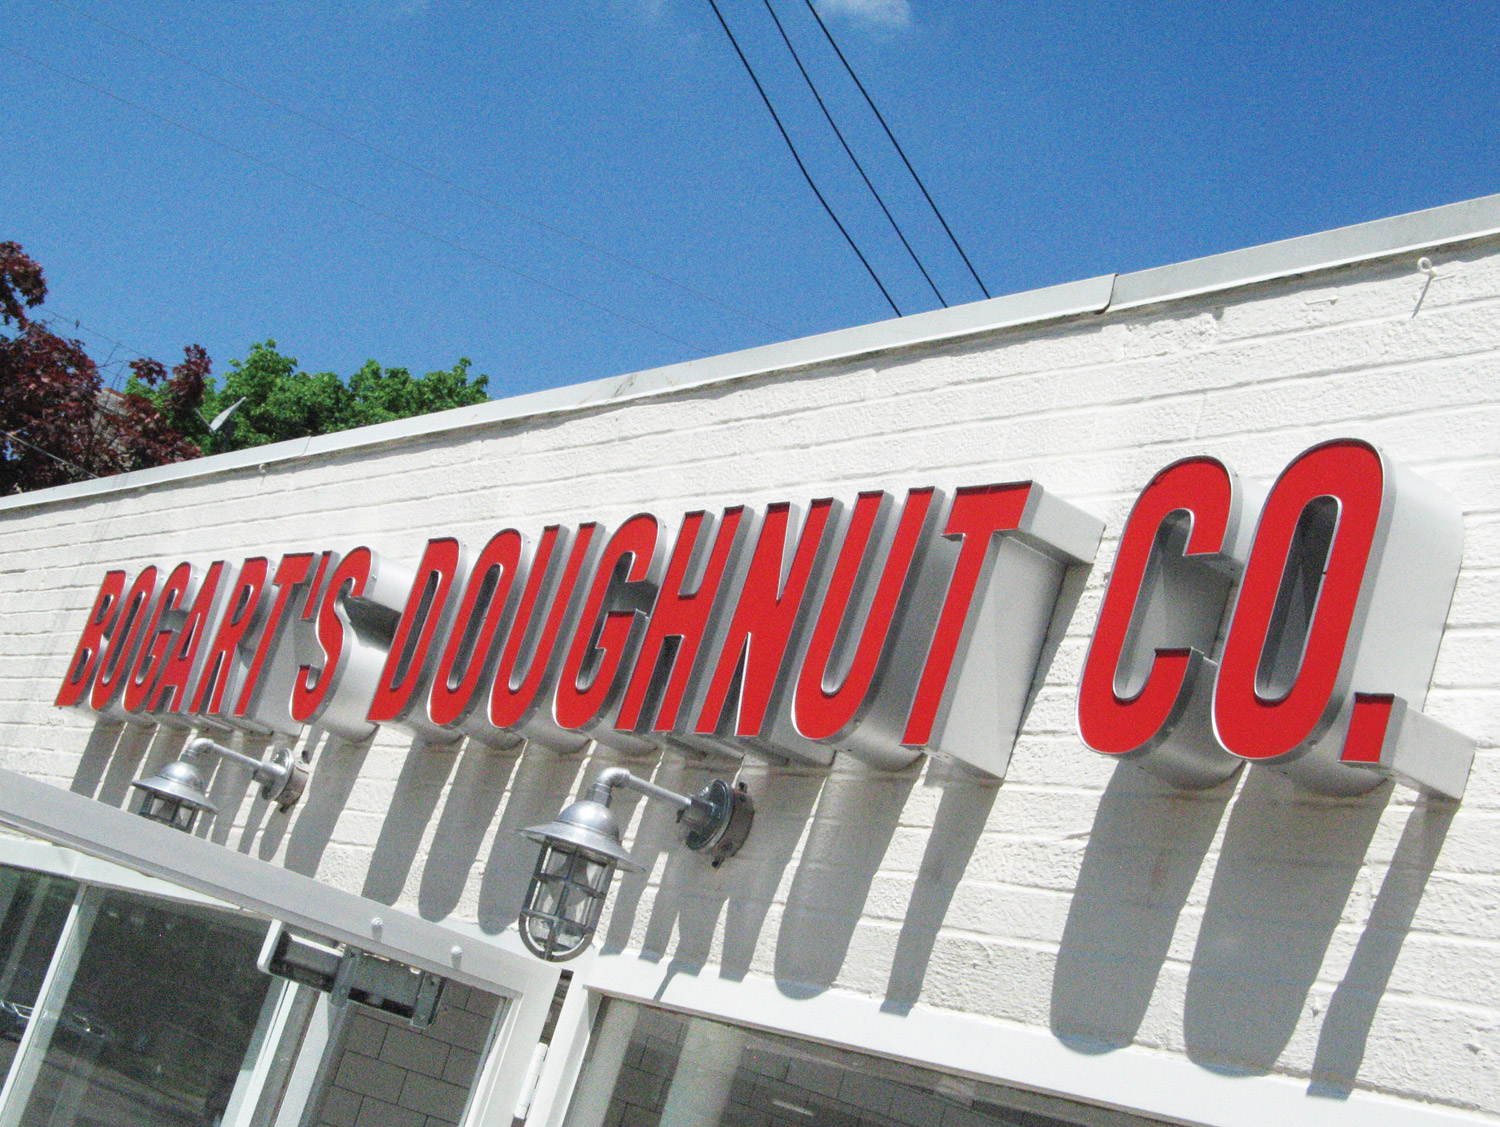 Bogarts-Doughnut-Co-Sign-01.jpg